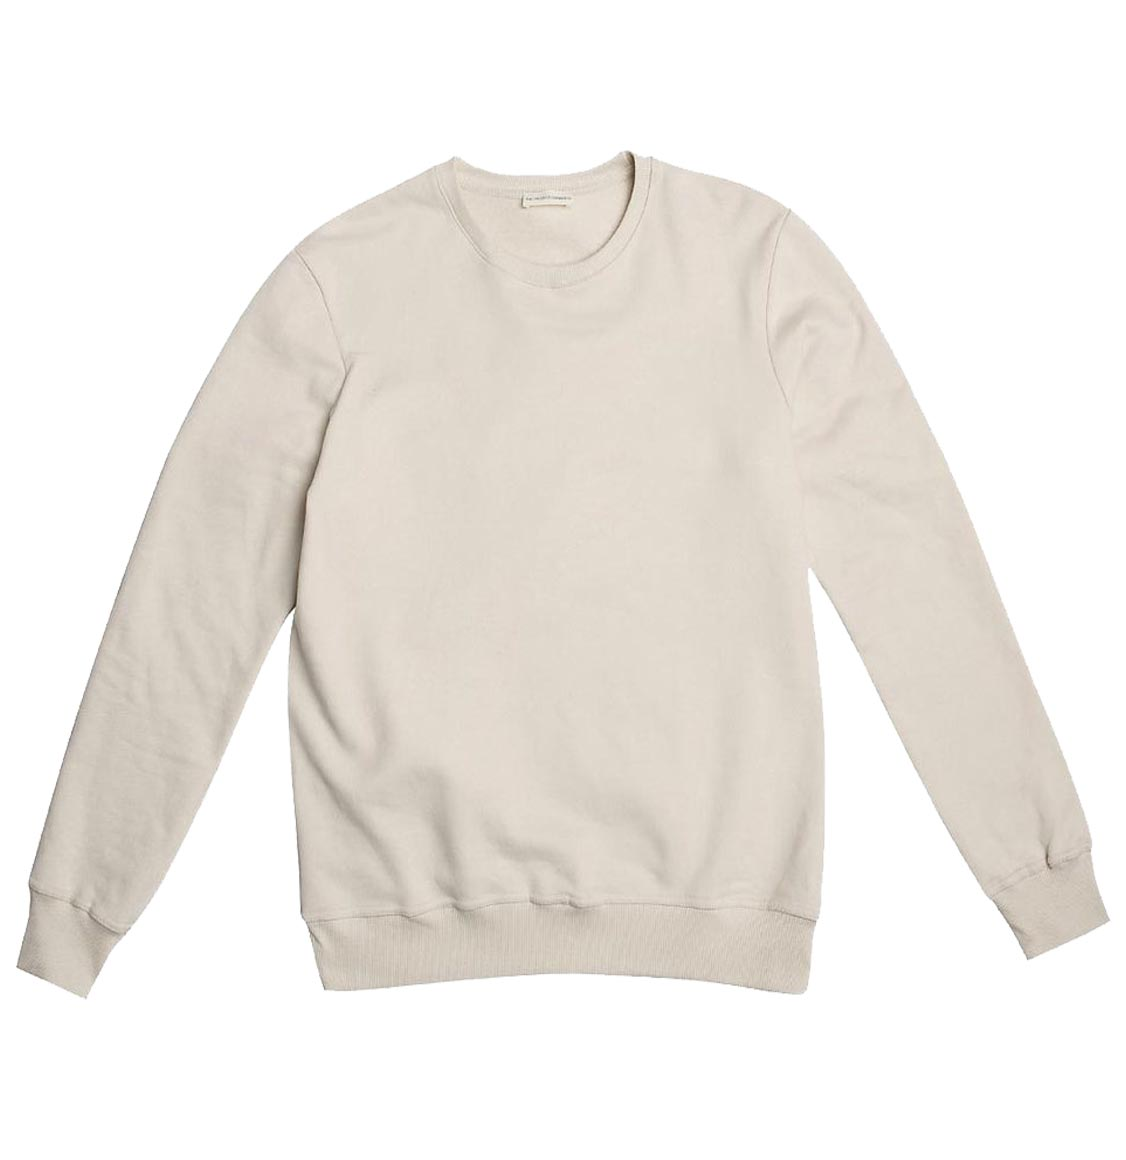 Crew Neck Sweatshirt Cream